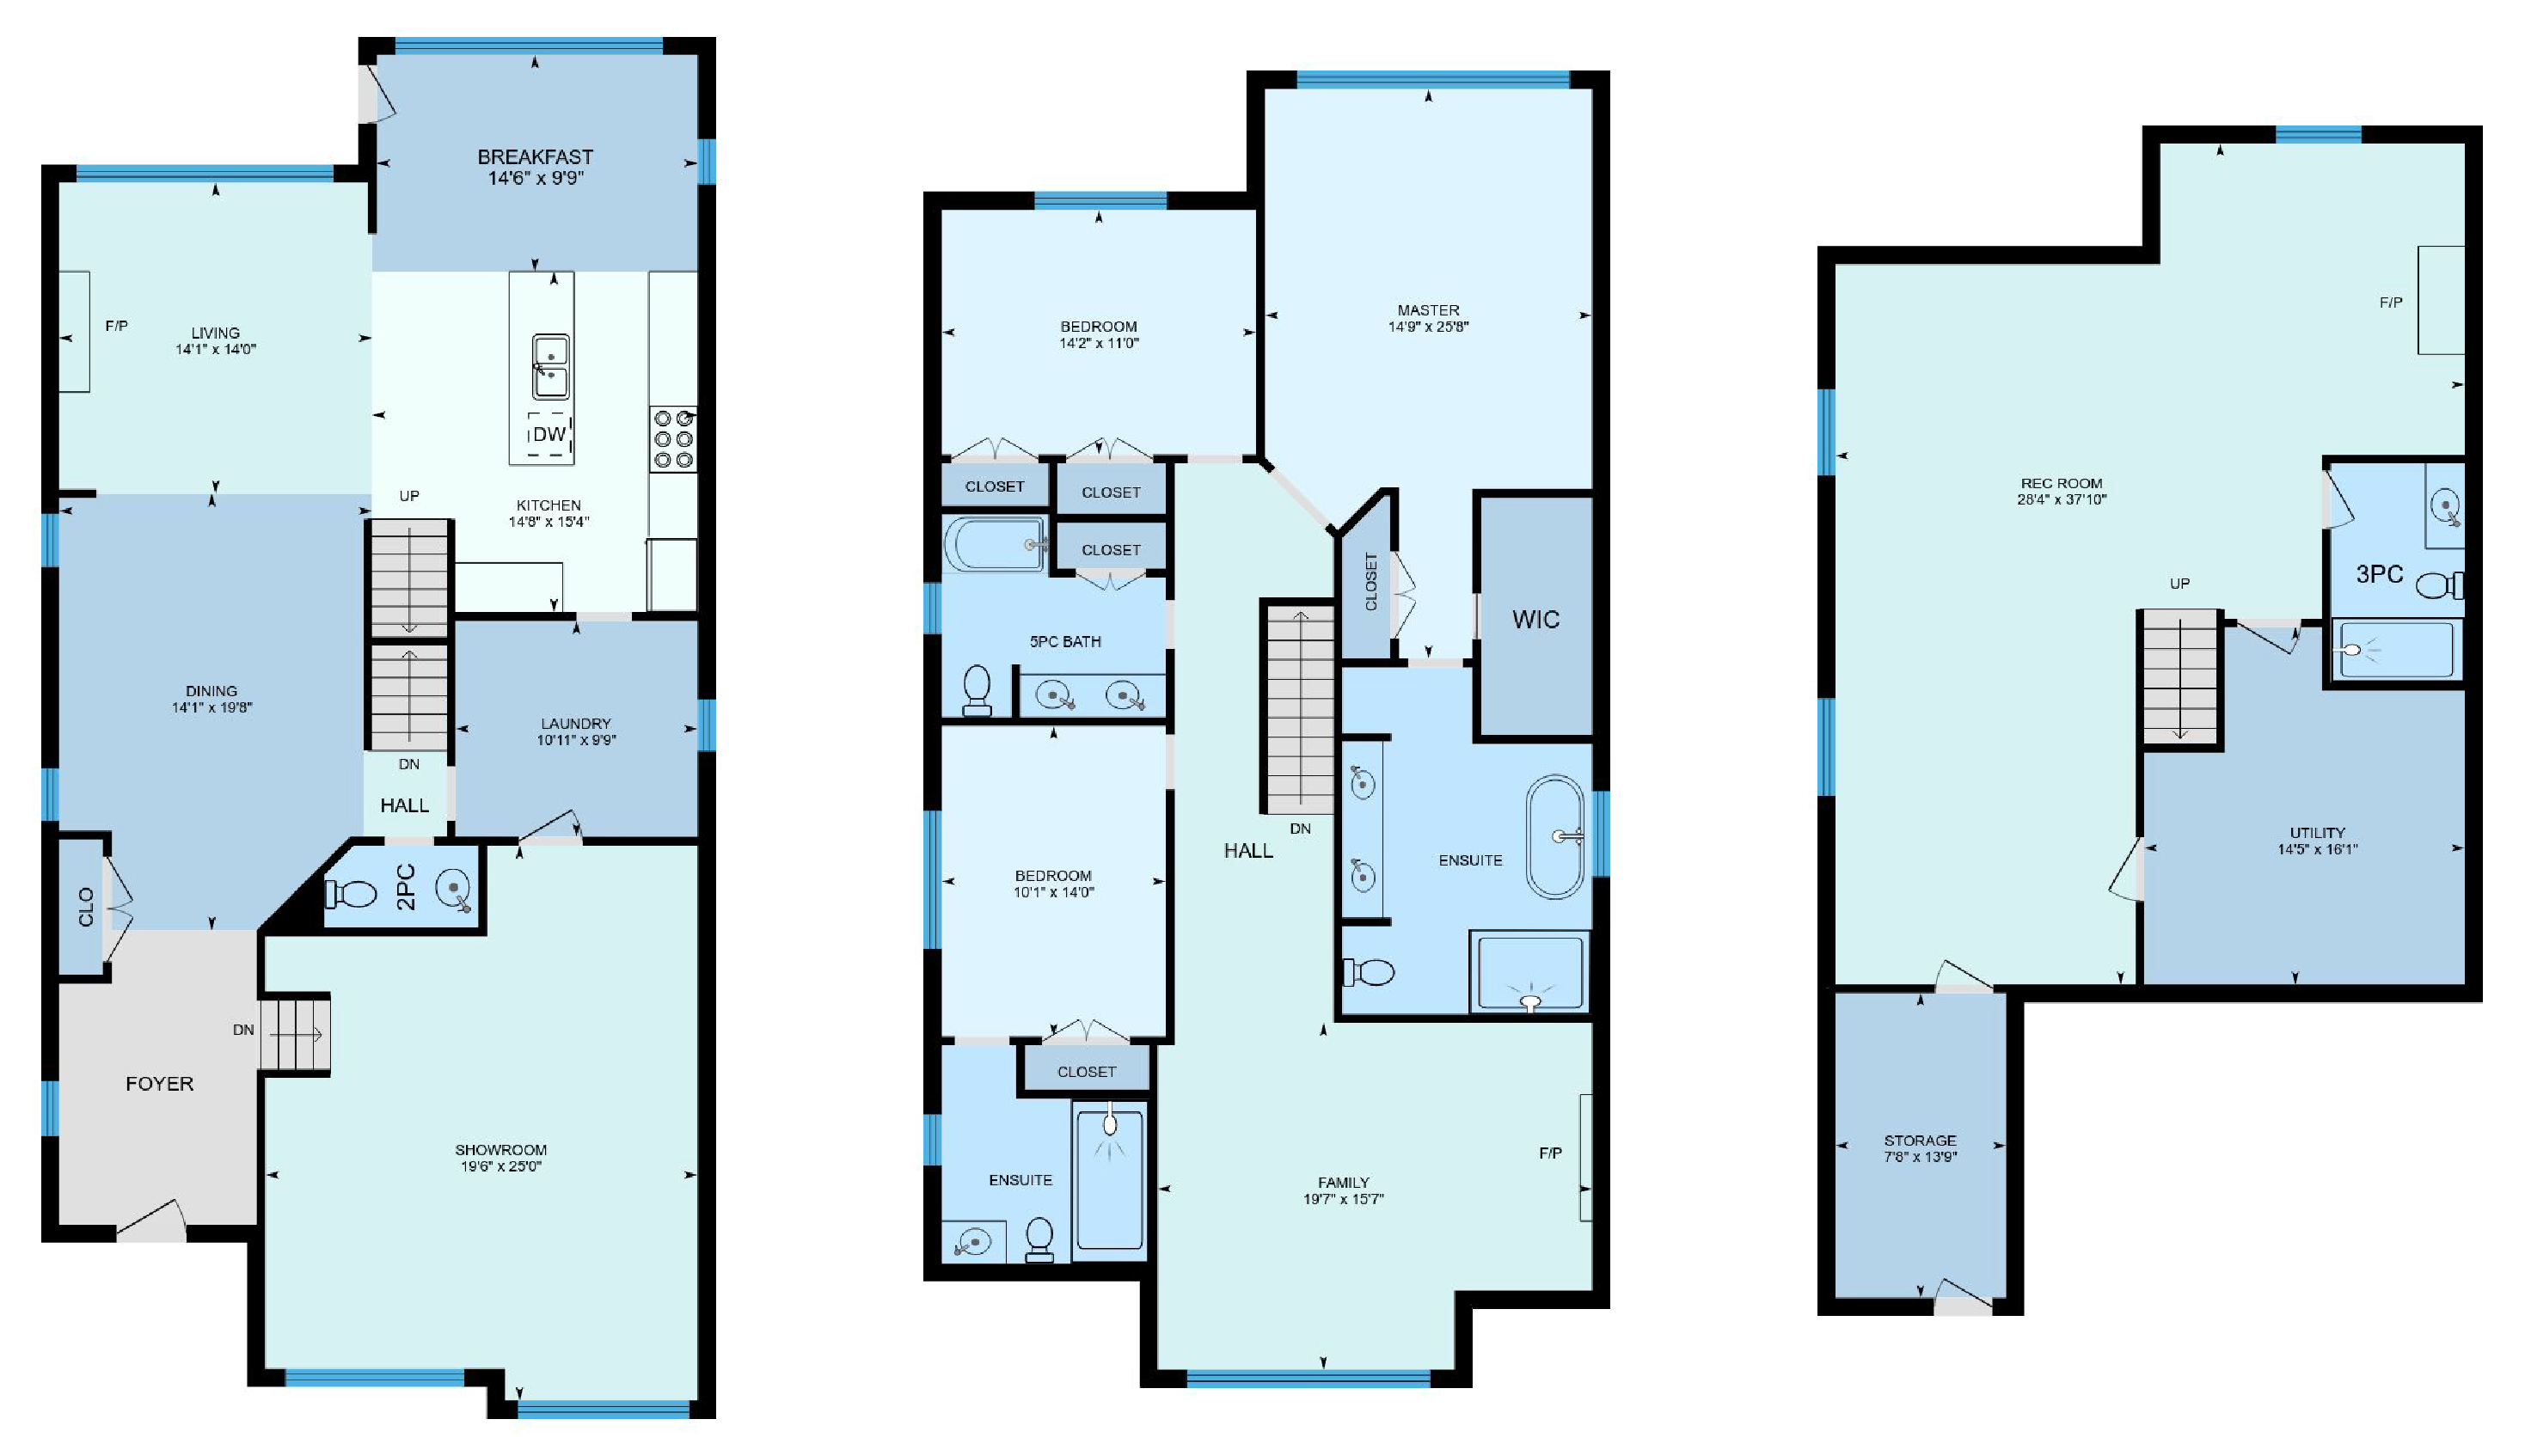 iGuide Multicolored Cool Floor Plan Colors - Square Feet Photography and Floor Plans